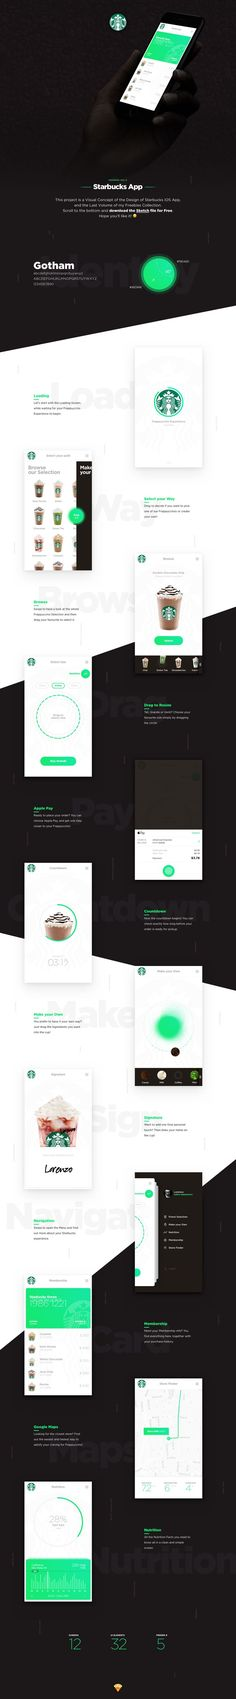 39 best starbucks online coupon codes images on pinterest this project is a visual concept of the design of starbucks ios app and the fandeluxe Image collections